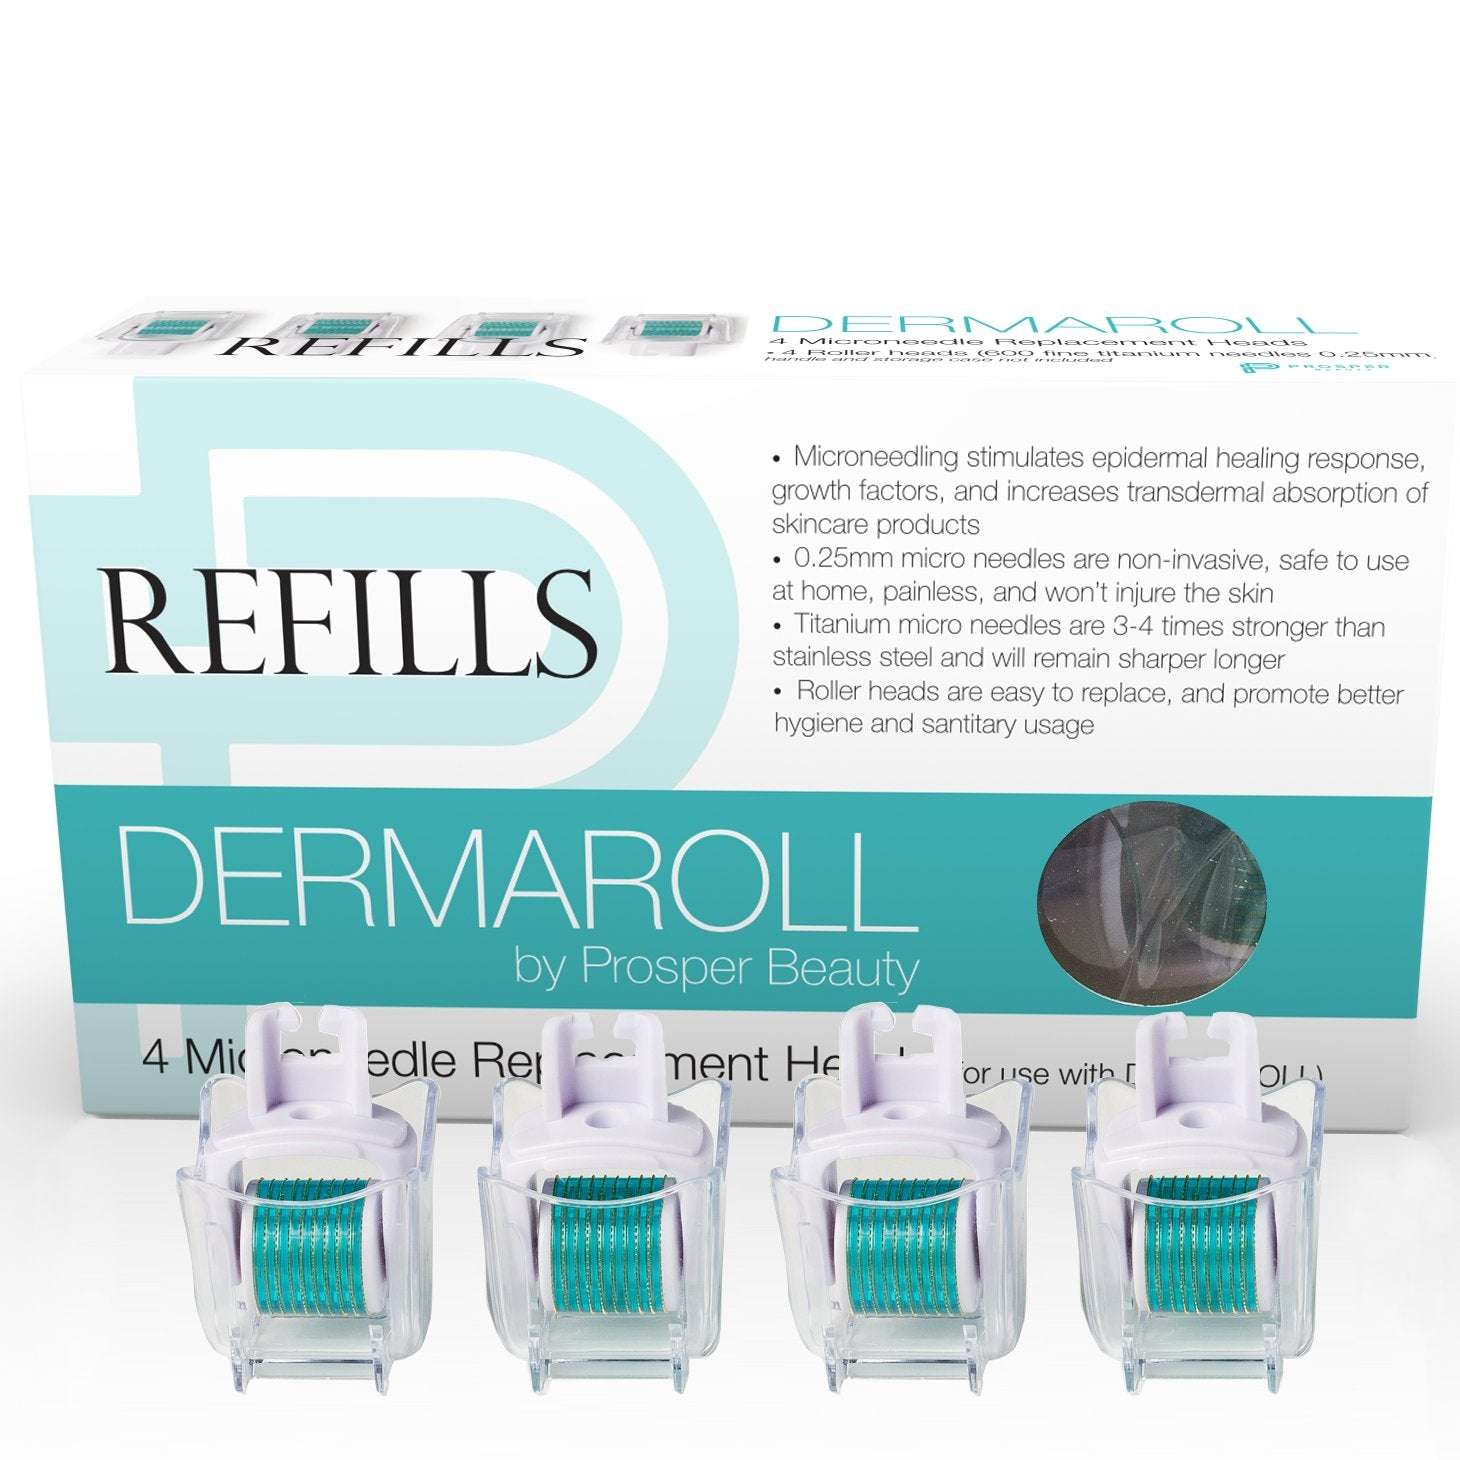 DERMAROLL REFILLS 0.25mm by Prosper Beauty (4 Microneedle Replacement Heads 0.25mm - NO HANDLE, ROLLER HEADS ONLY)